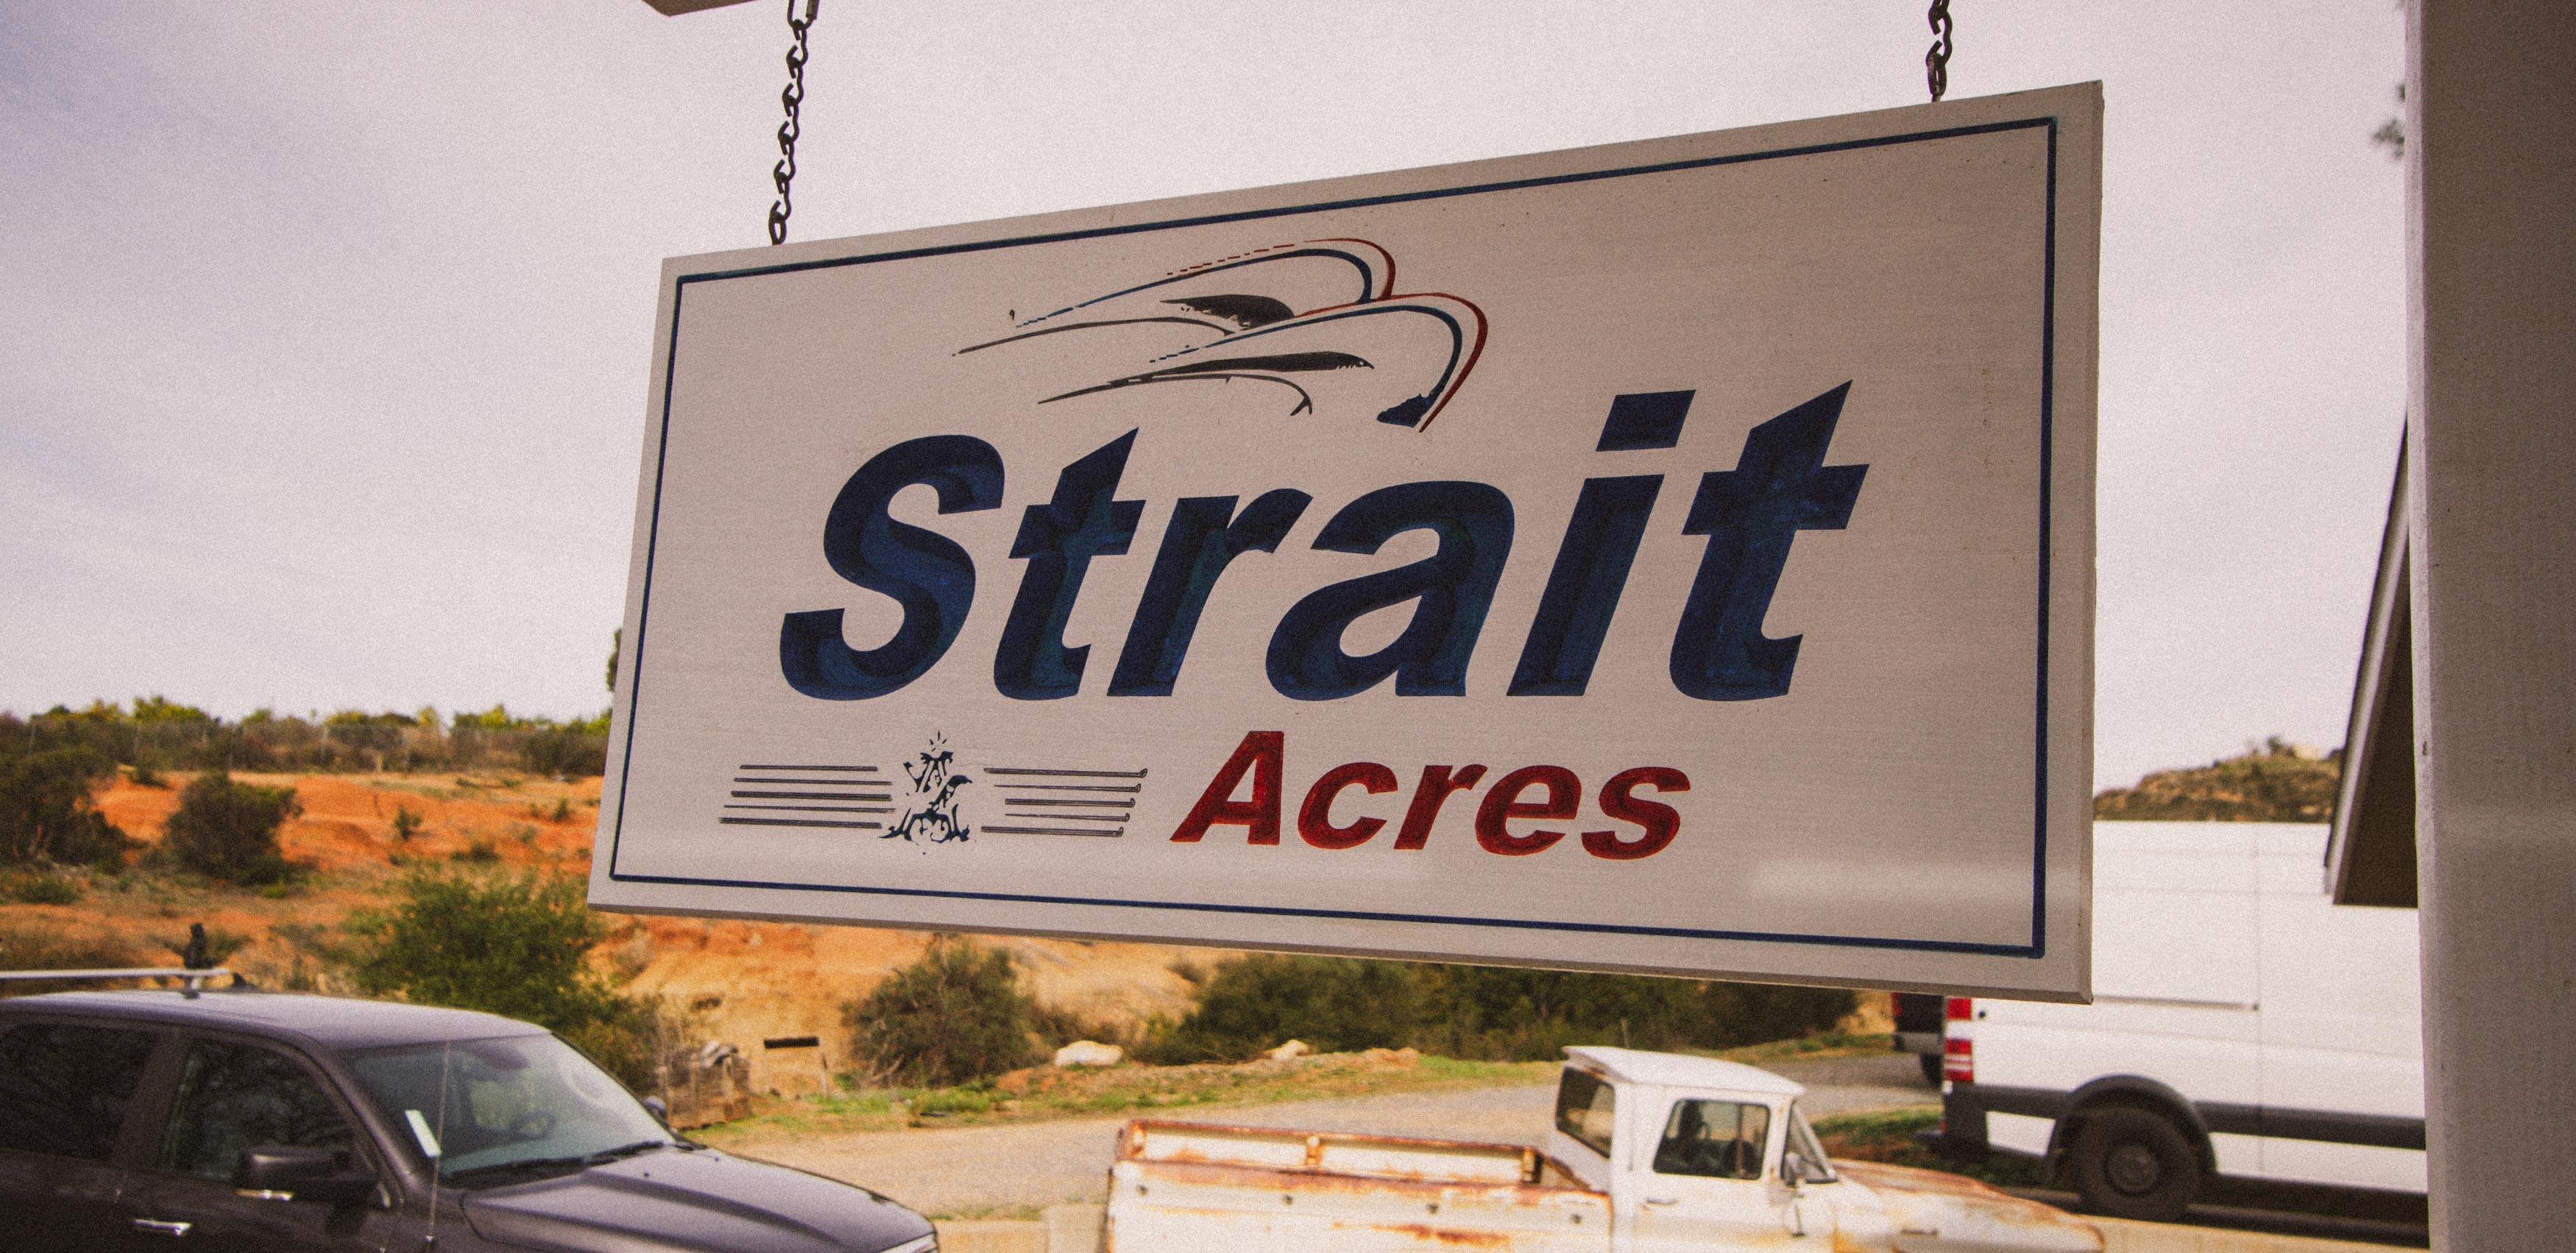 Married with Acres: The Strait's Winter Wonderland